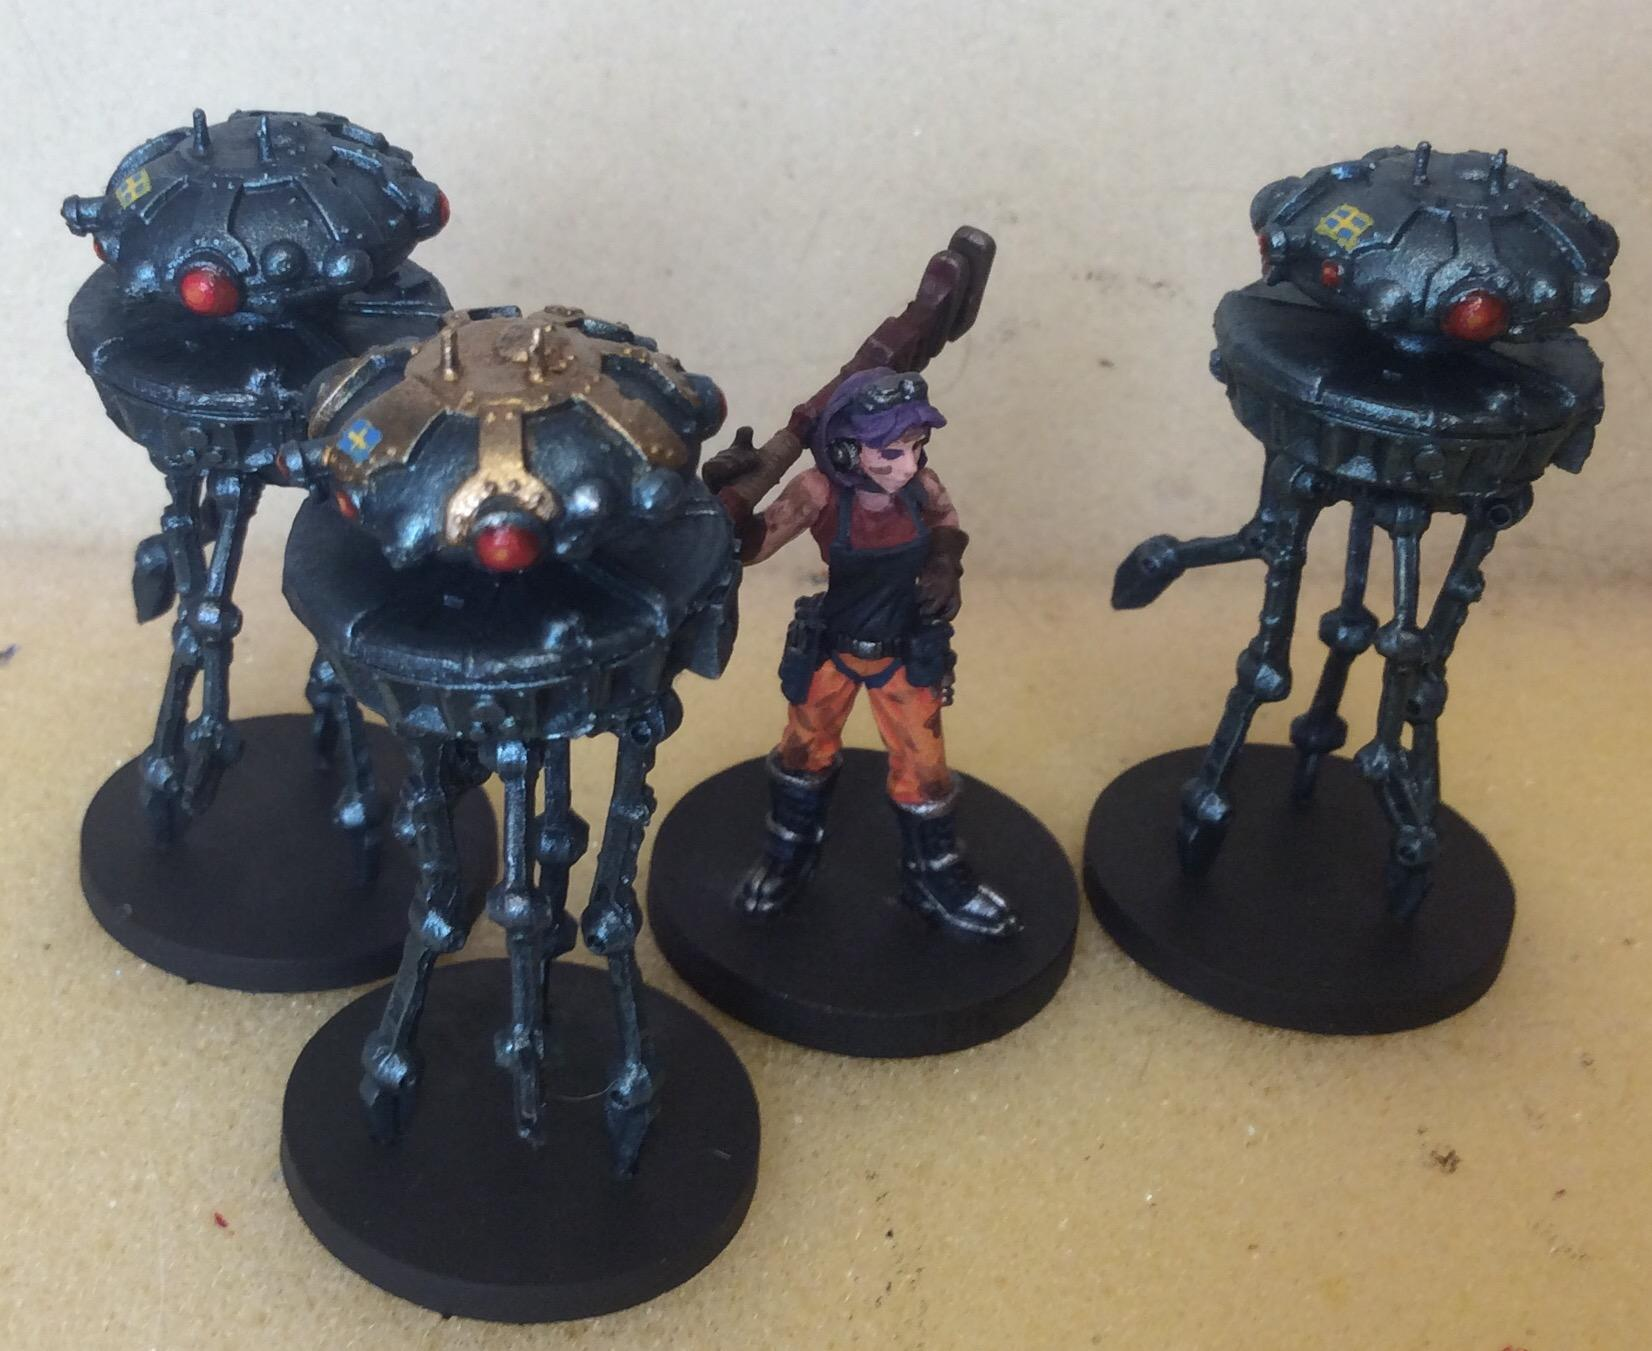 Freehand, Galactic Empire, Imperial Probe Droid, Looted, Star Wars, Sweden